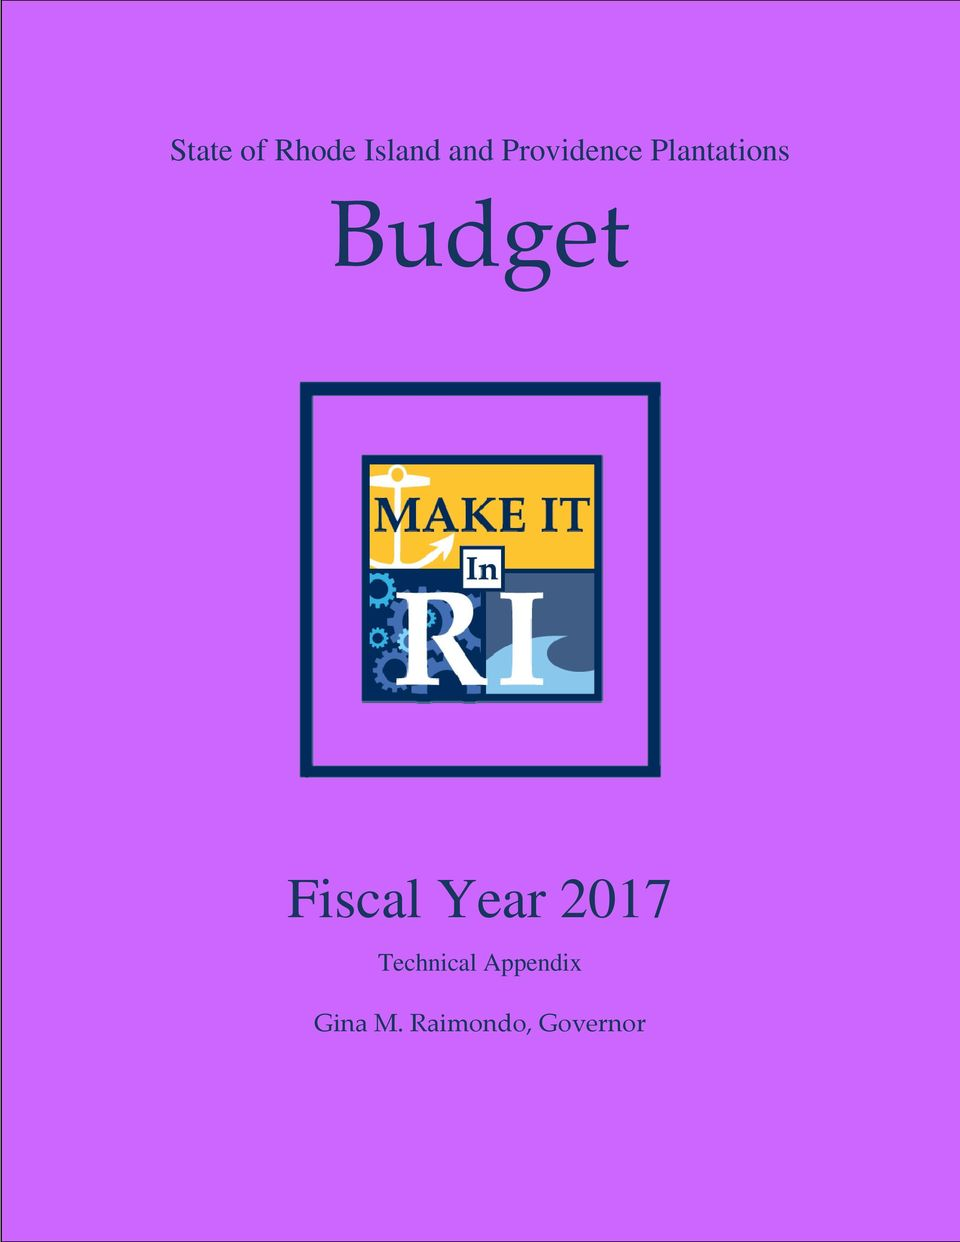 Fiscal Year 2017 Technical